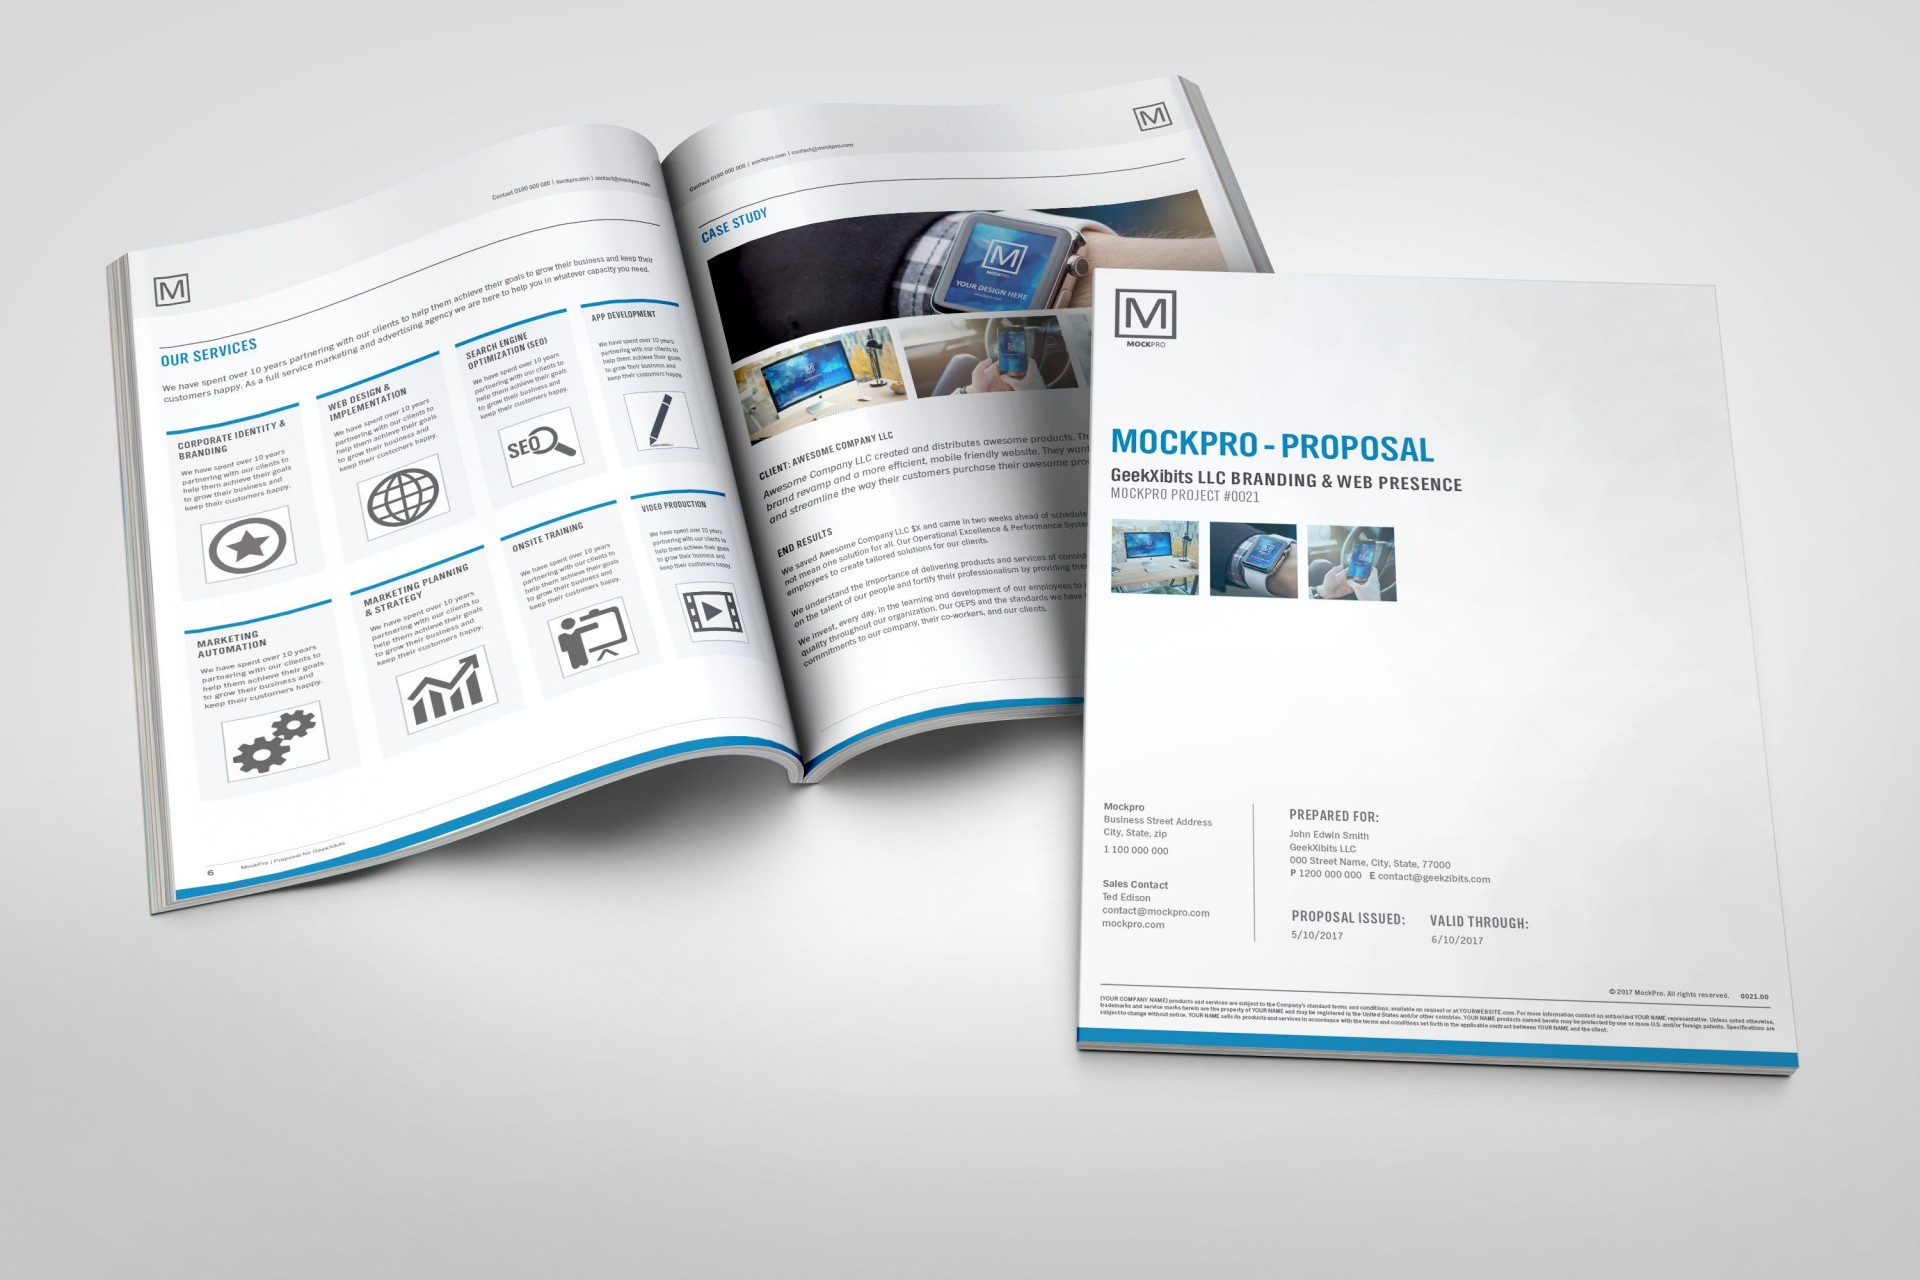 003 Wonderful Simple Busines Proposal Template Inspiration  Example Word Doc Basic Plan Free1920